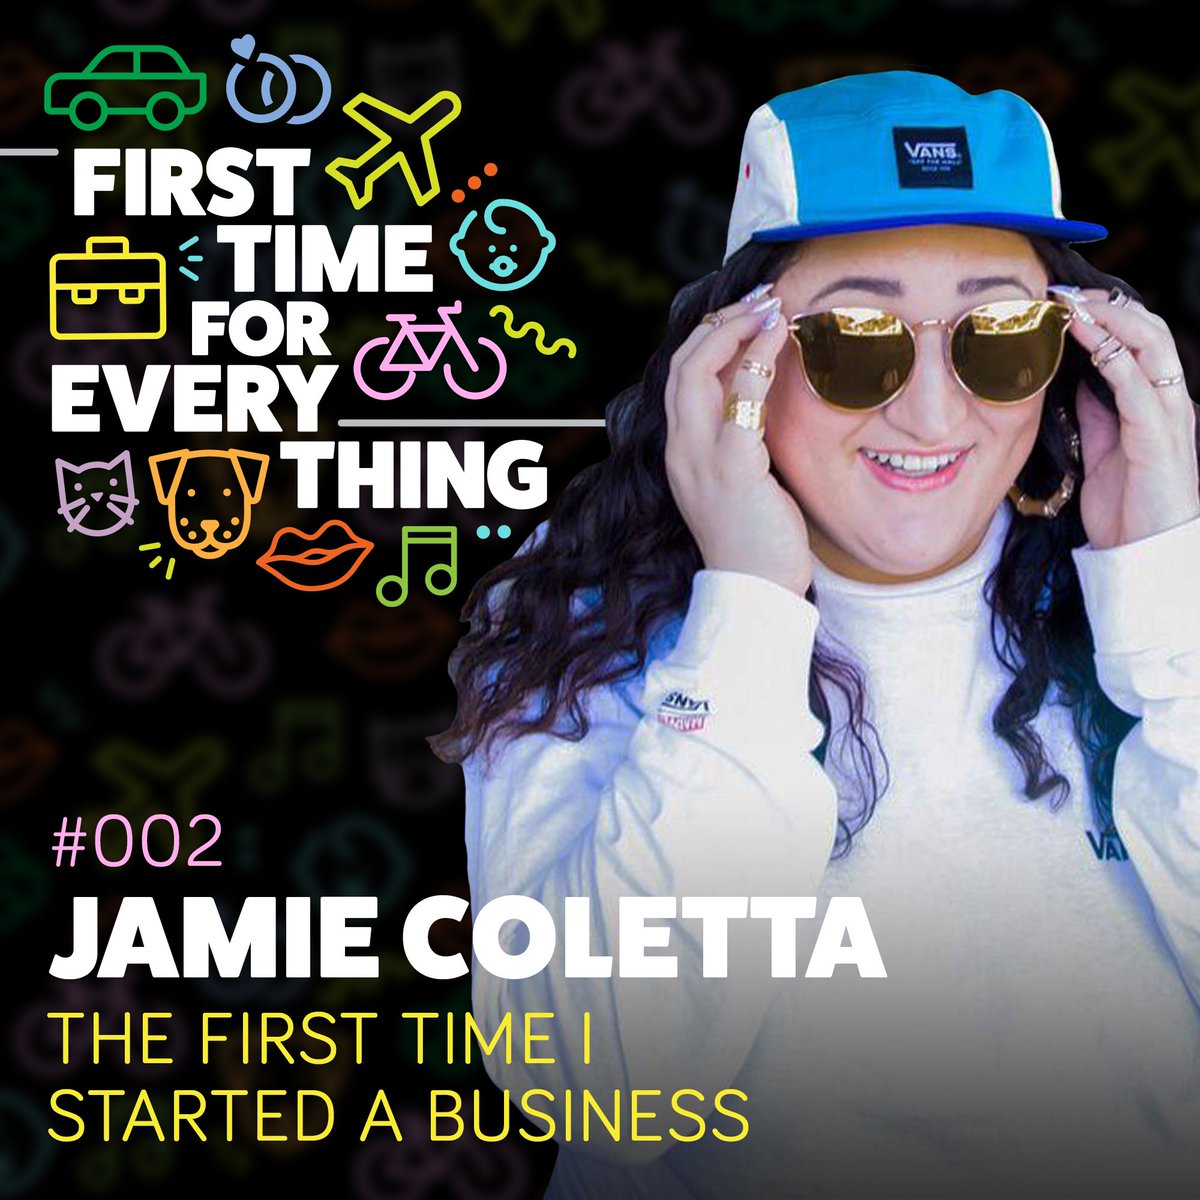 Ep 2 of #FirstTimeForEverything has arrived, featuring @NOEARBUDS founder @jamiecoletta!  Join us as we discuss the music industry, starting a business, emo, and never having to answer to an old white guy again...  podfollow.com/ftfe